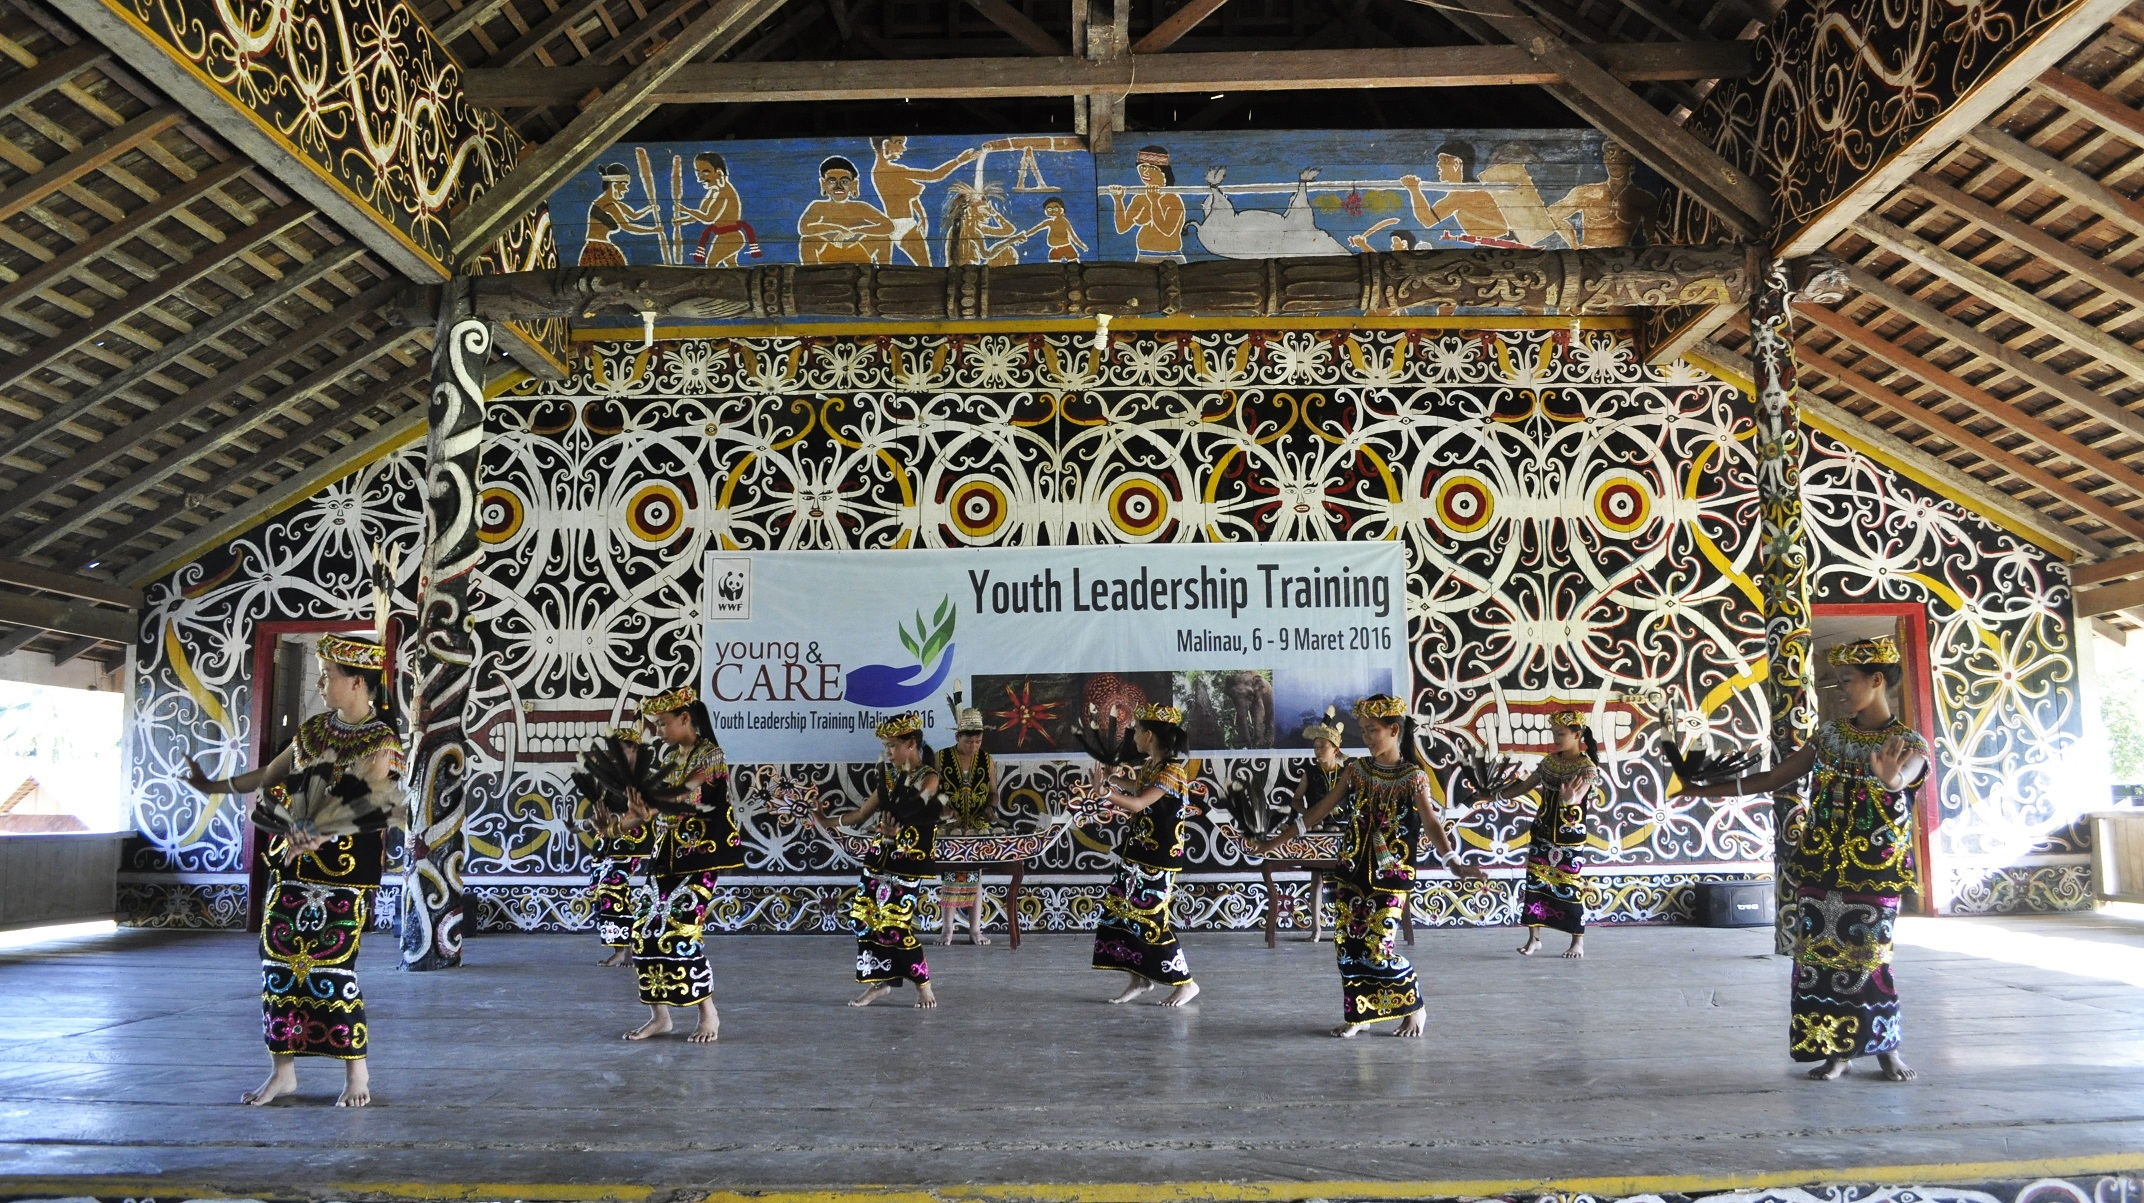 Youth Leadership Training Desa Wisata Setulang Malinau Wwf Comments Kab